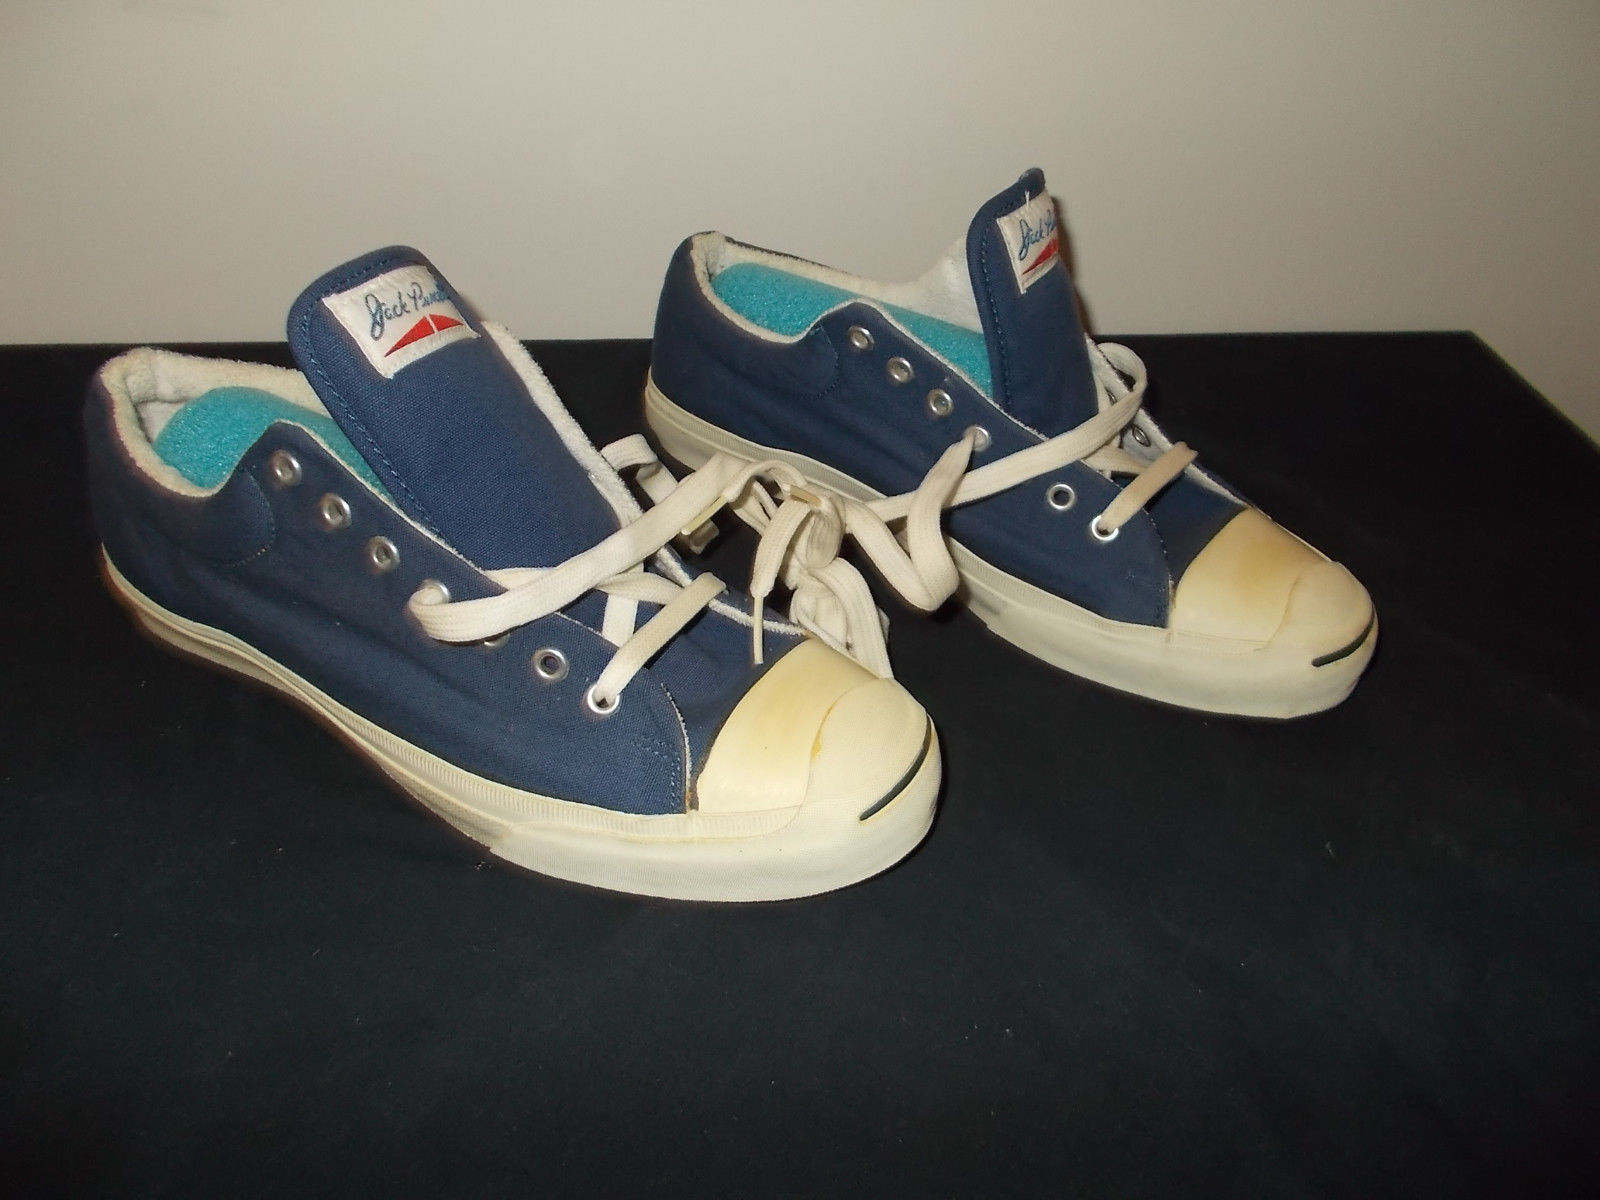 VTG-1970s NOS Converse Jack Purcell Sneaker Shoes Kicks Size 12 sku3